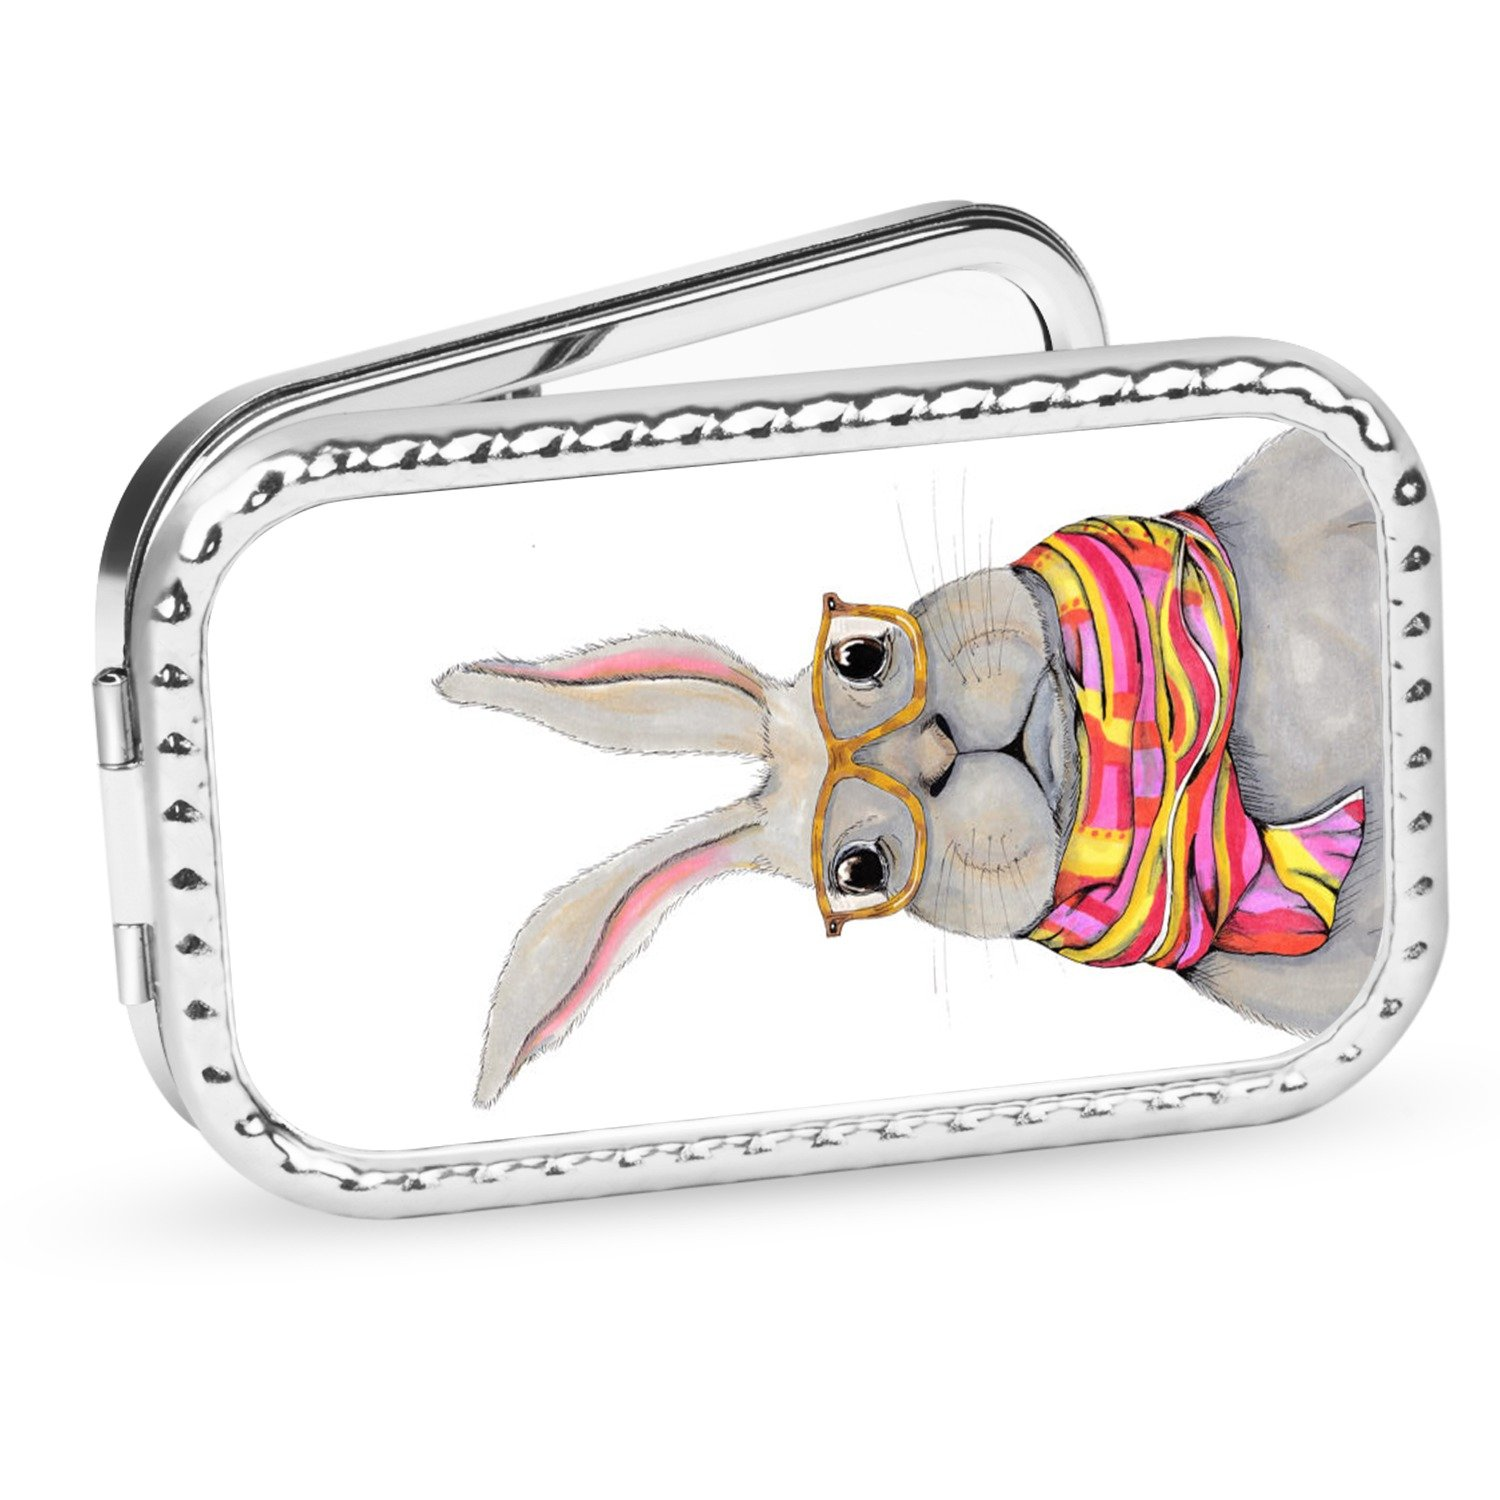 Bunny Rabbit Makeup Compact Mirrors 1X and 2X Pocket Size Handheld Mirrors for Travel Purse and Handbag Tifttay